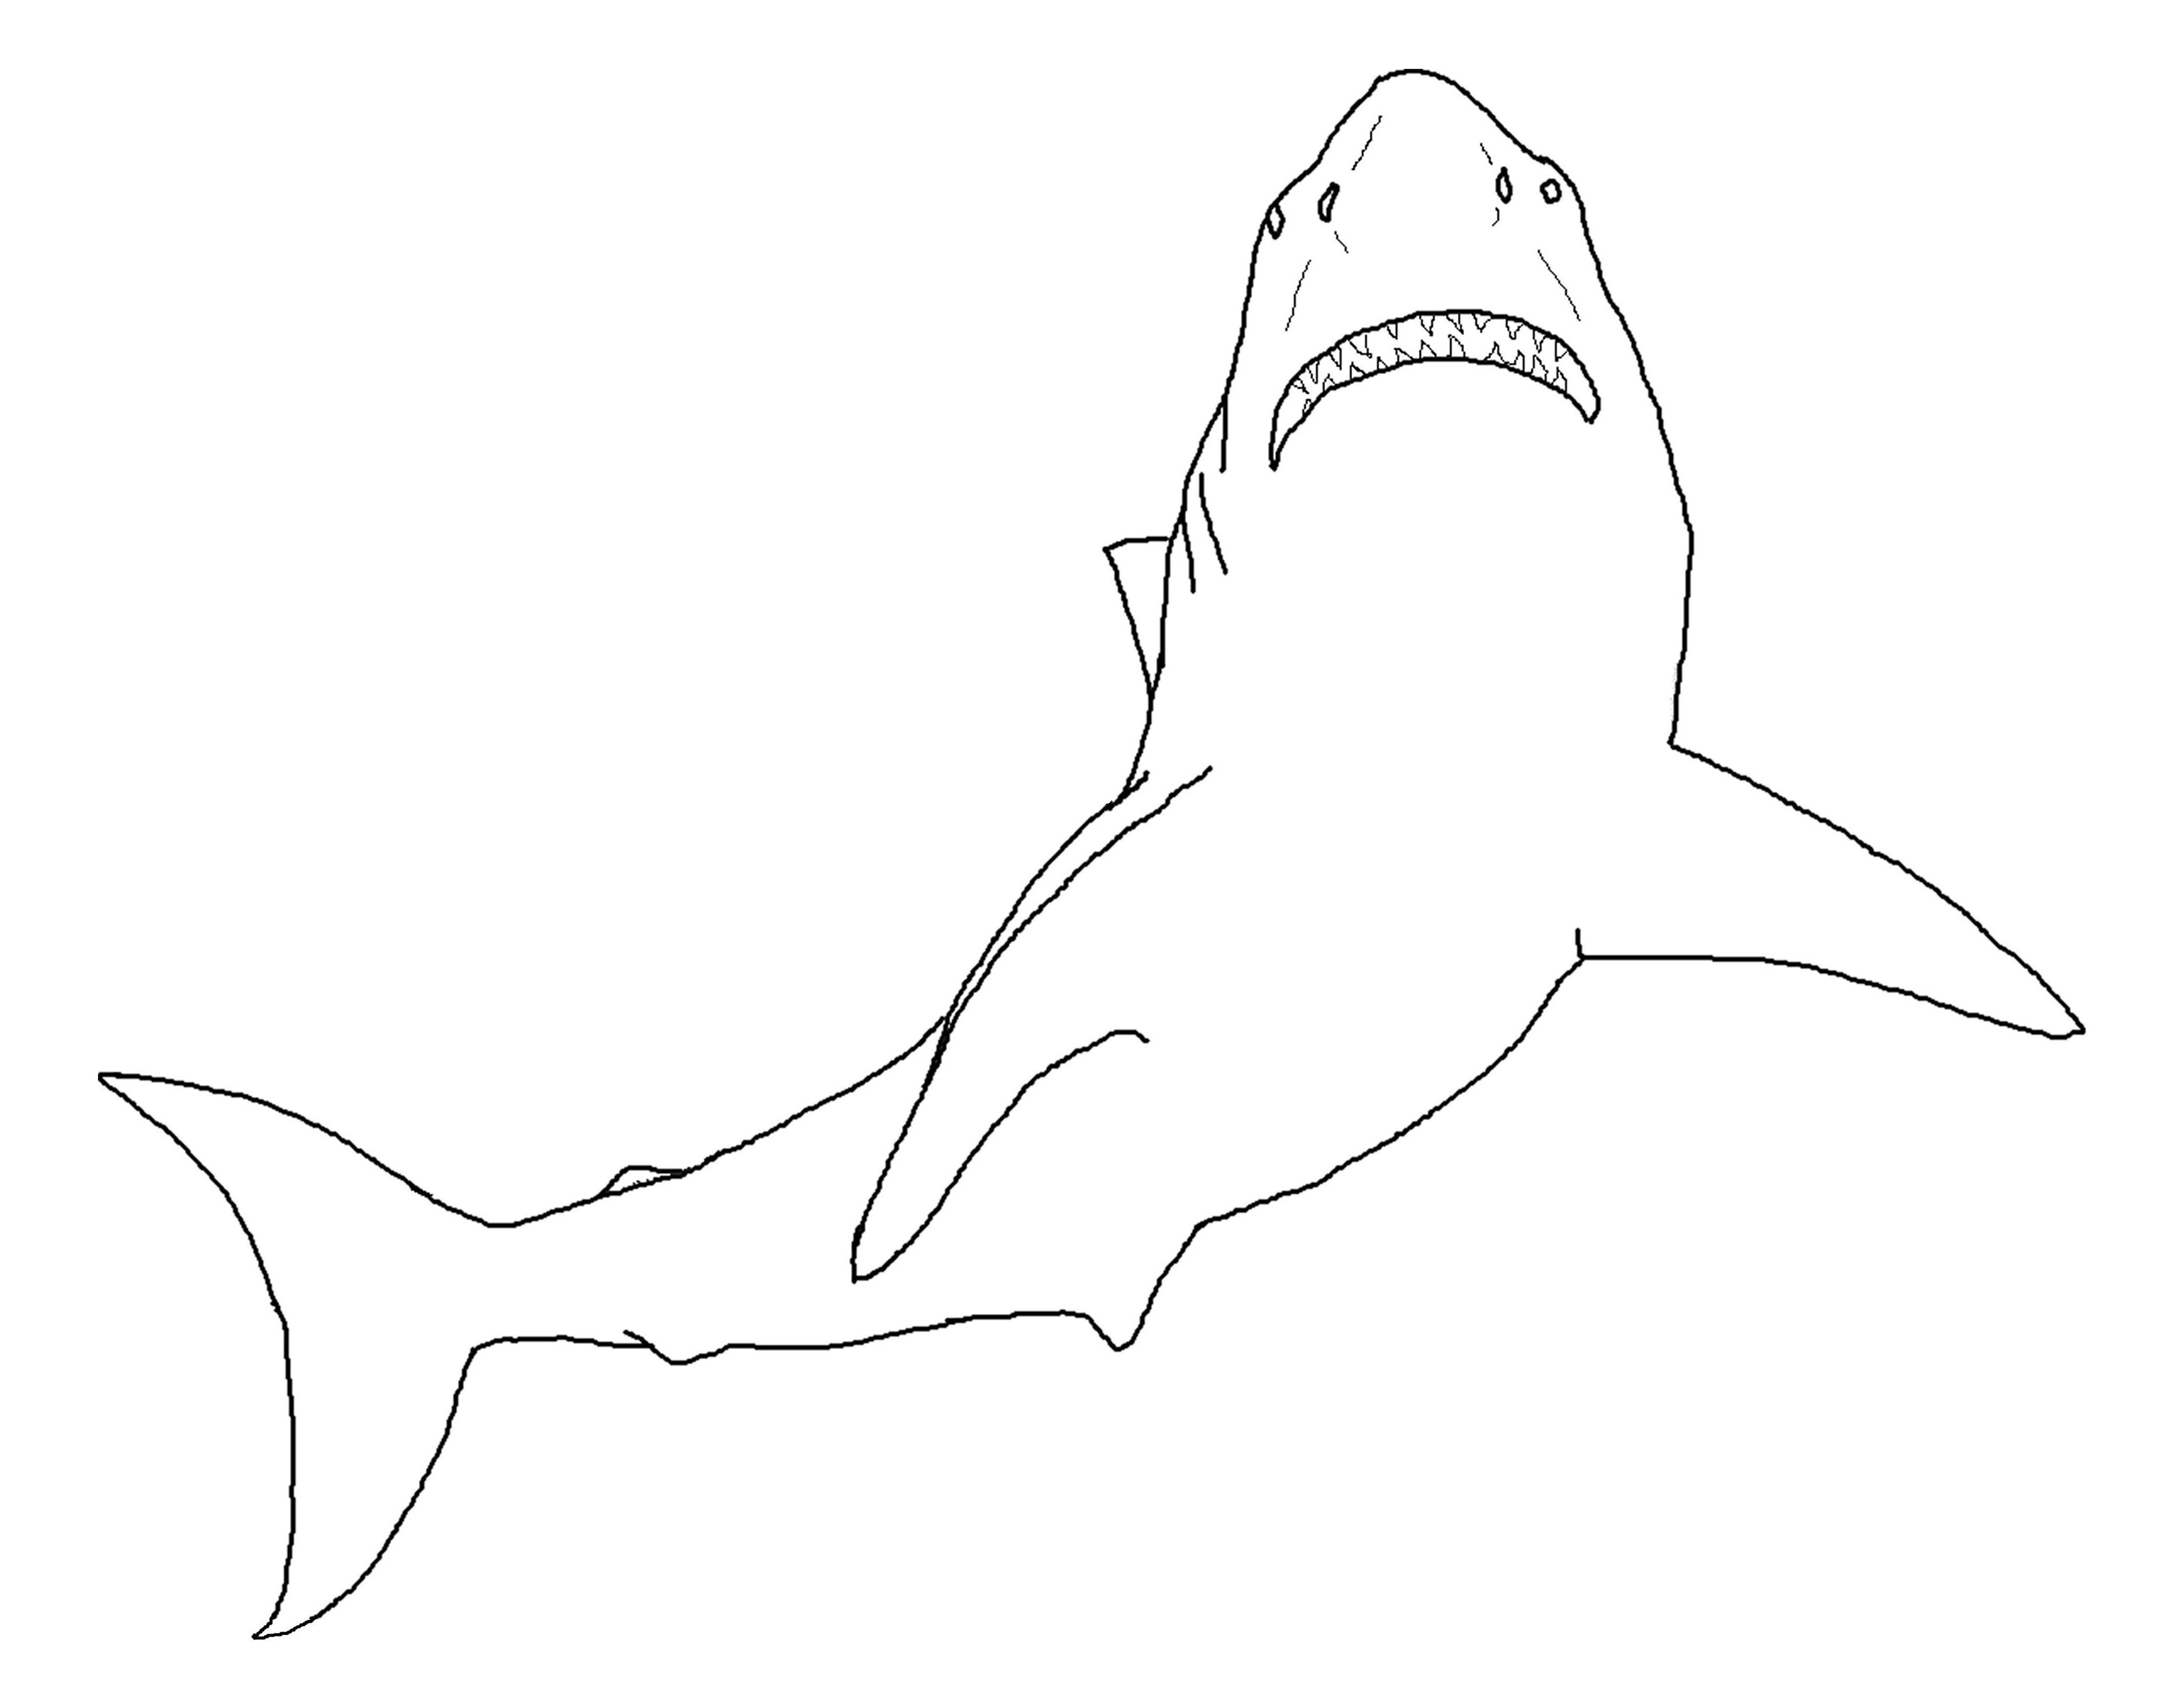 40+ Cartoon great white shark coloring page ideas in 2021